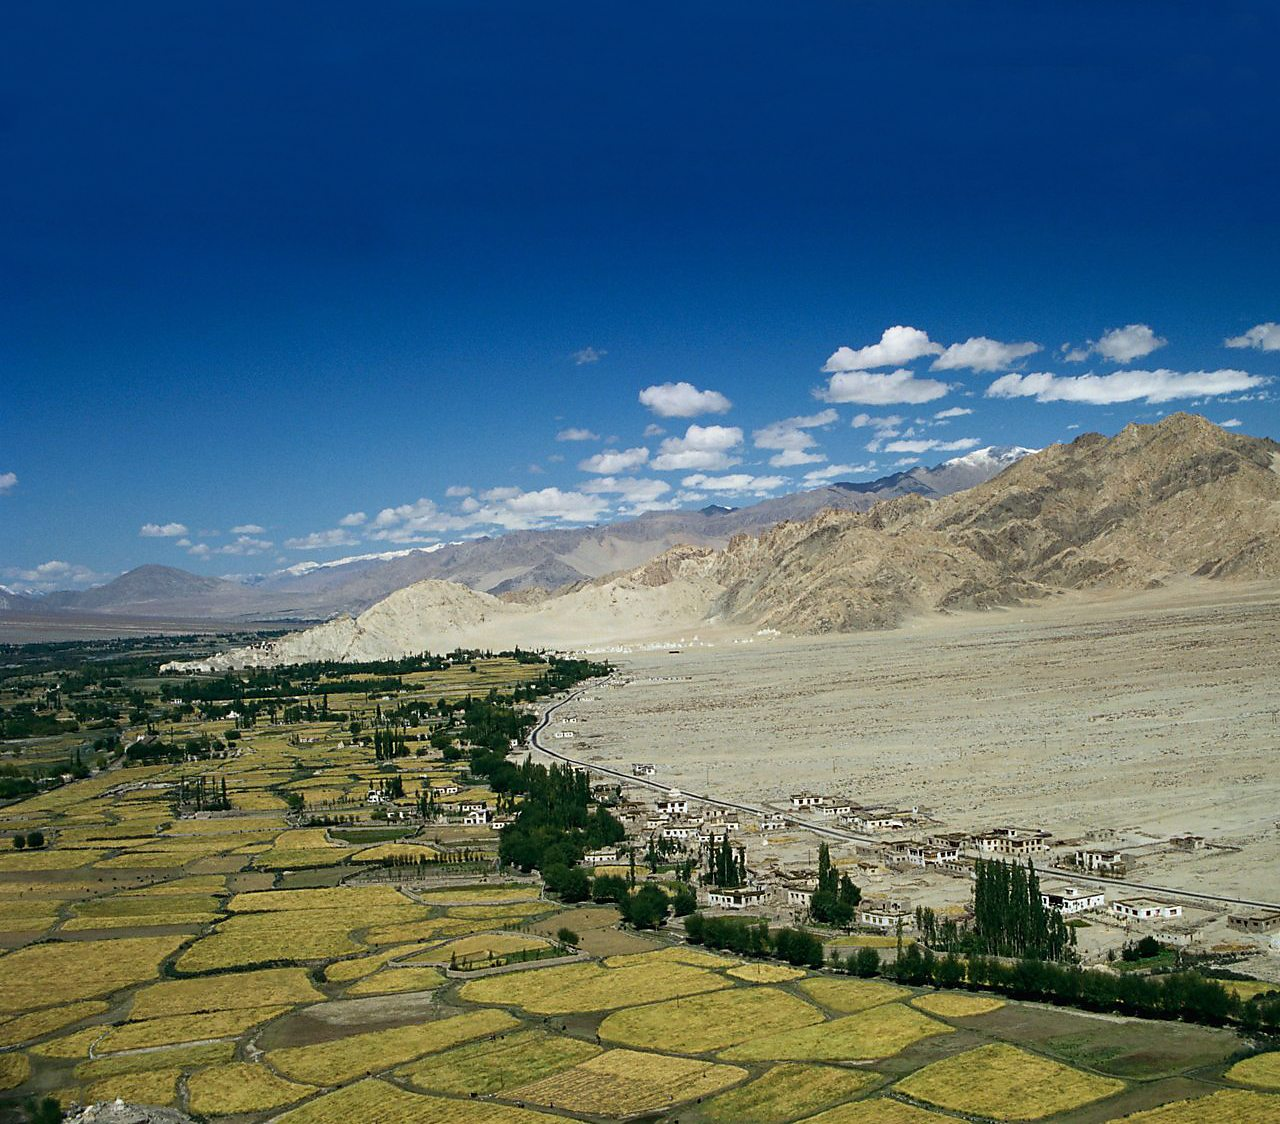 Irrigated fields in the Indus Valley